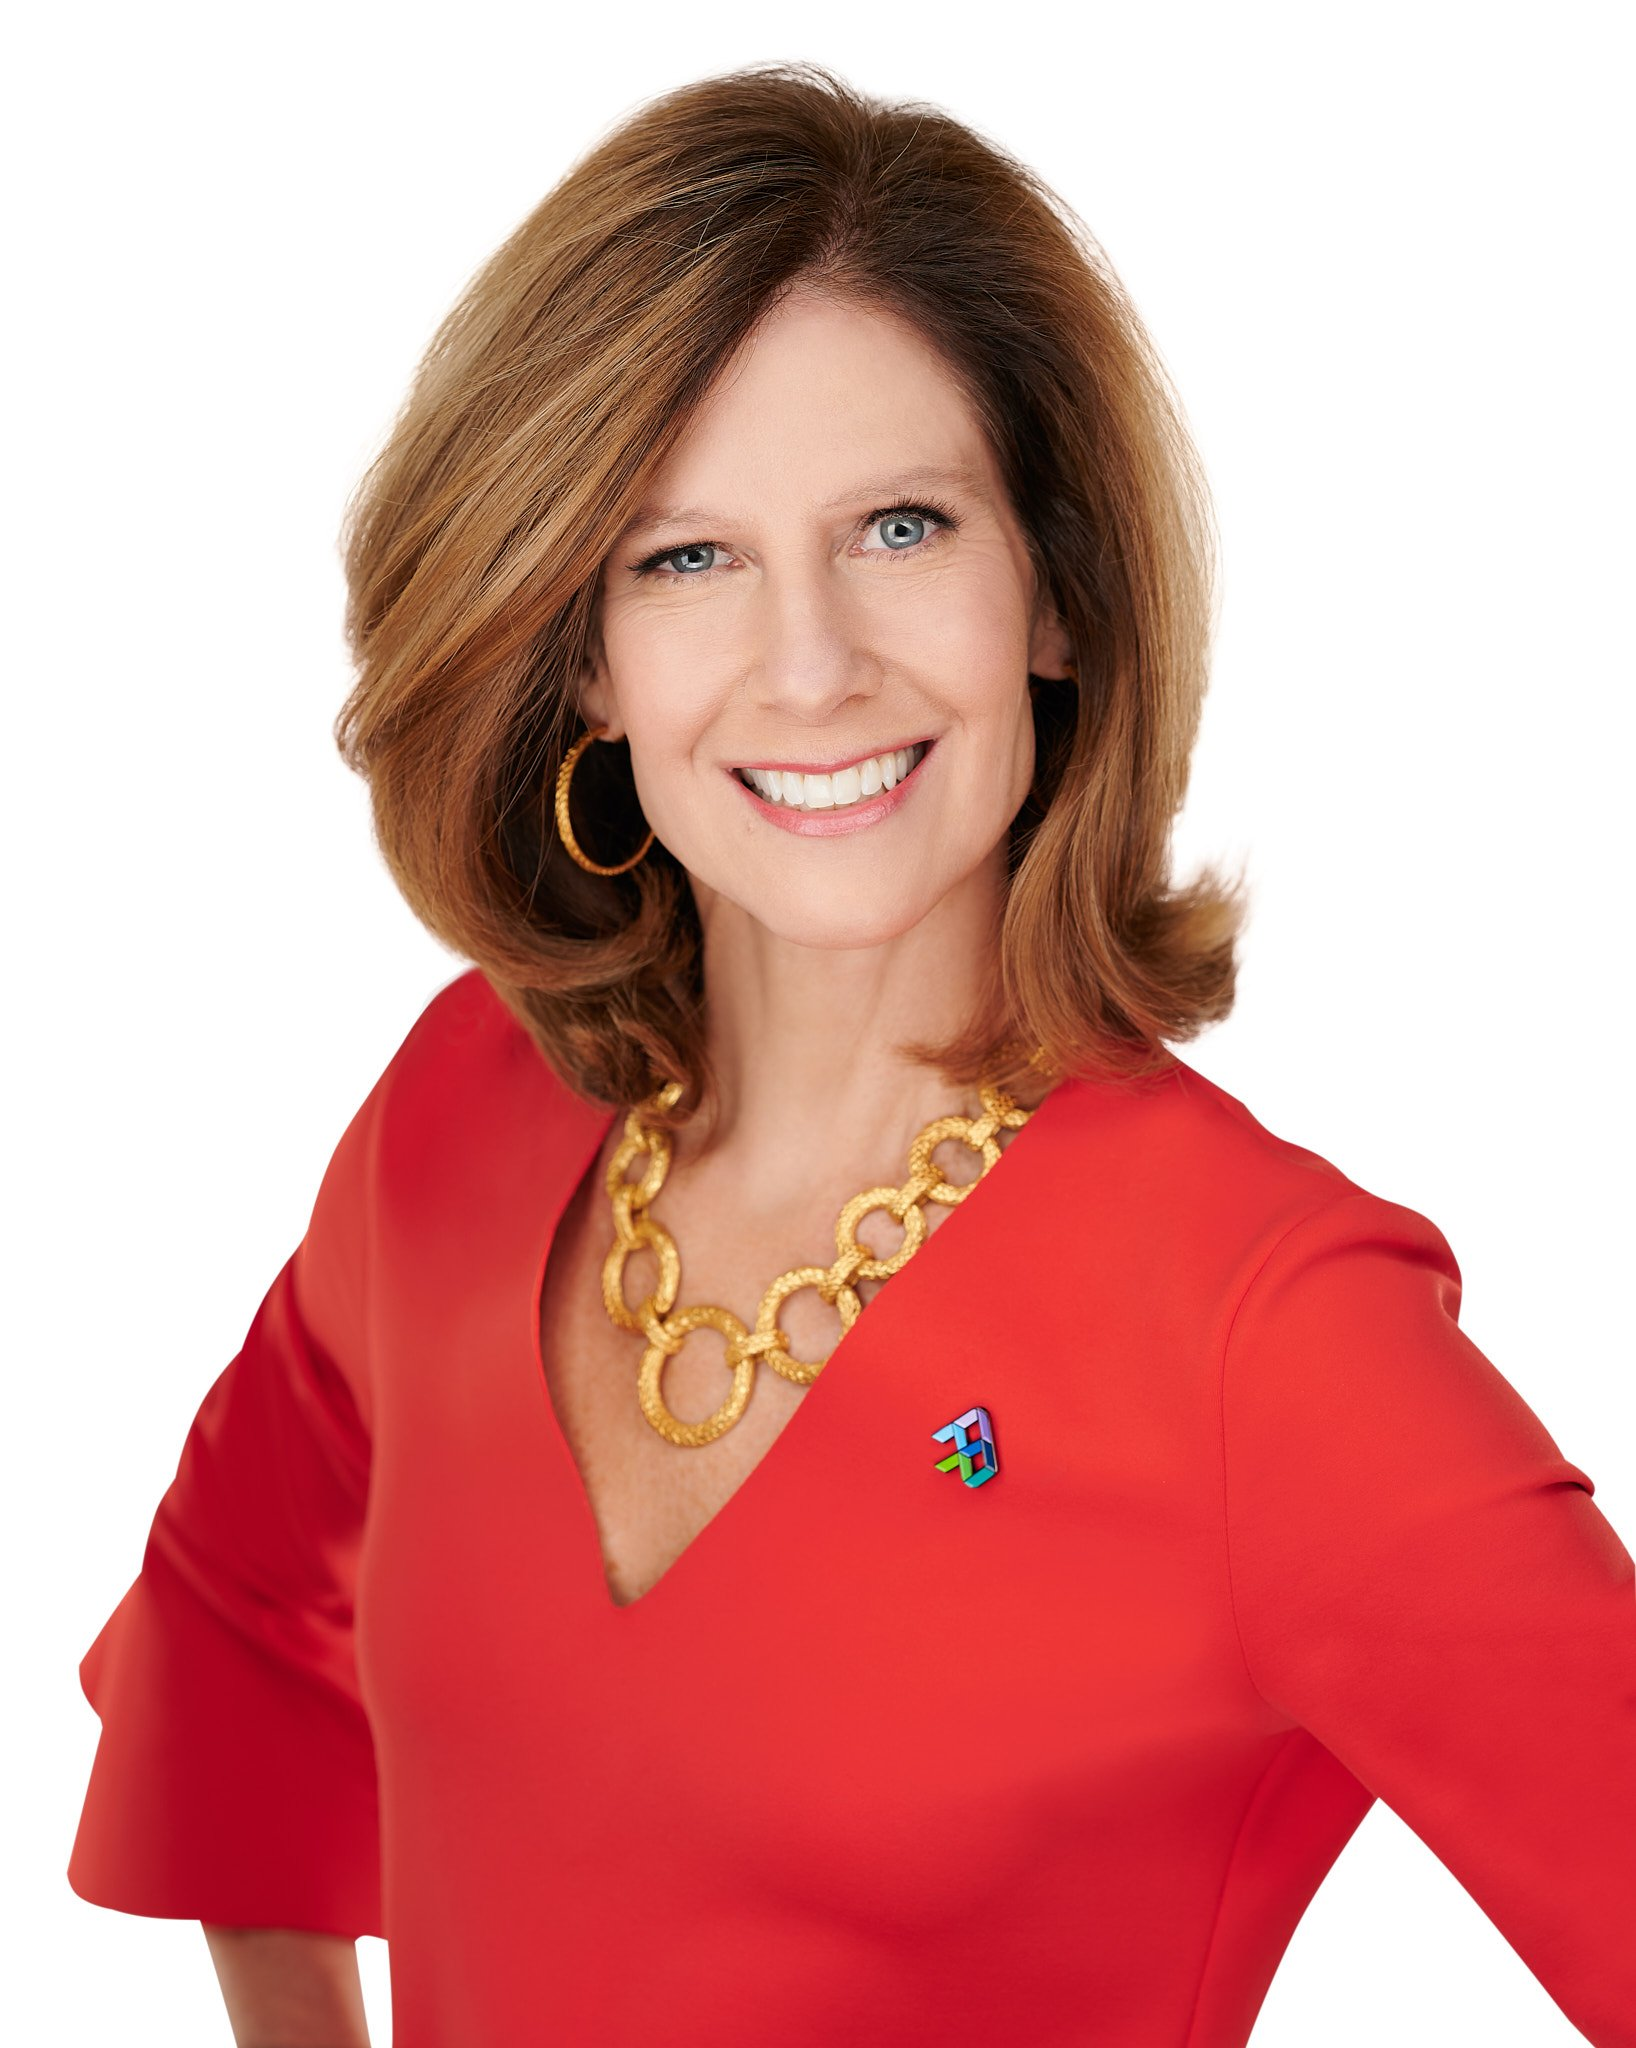 confident pose works well for this business portrait of Susan Salka